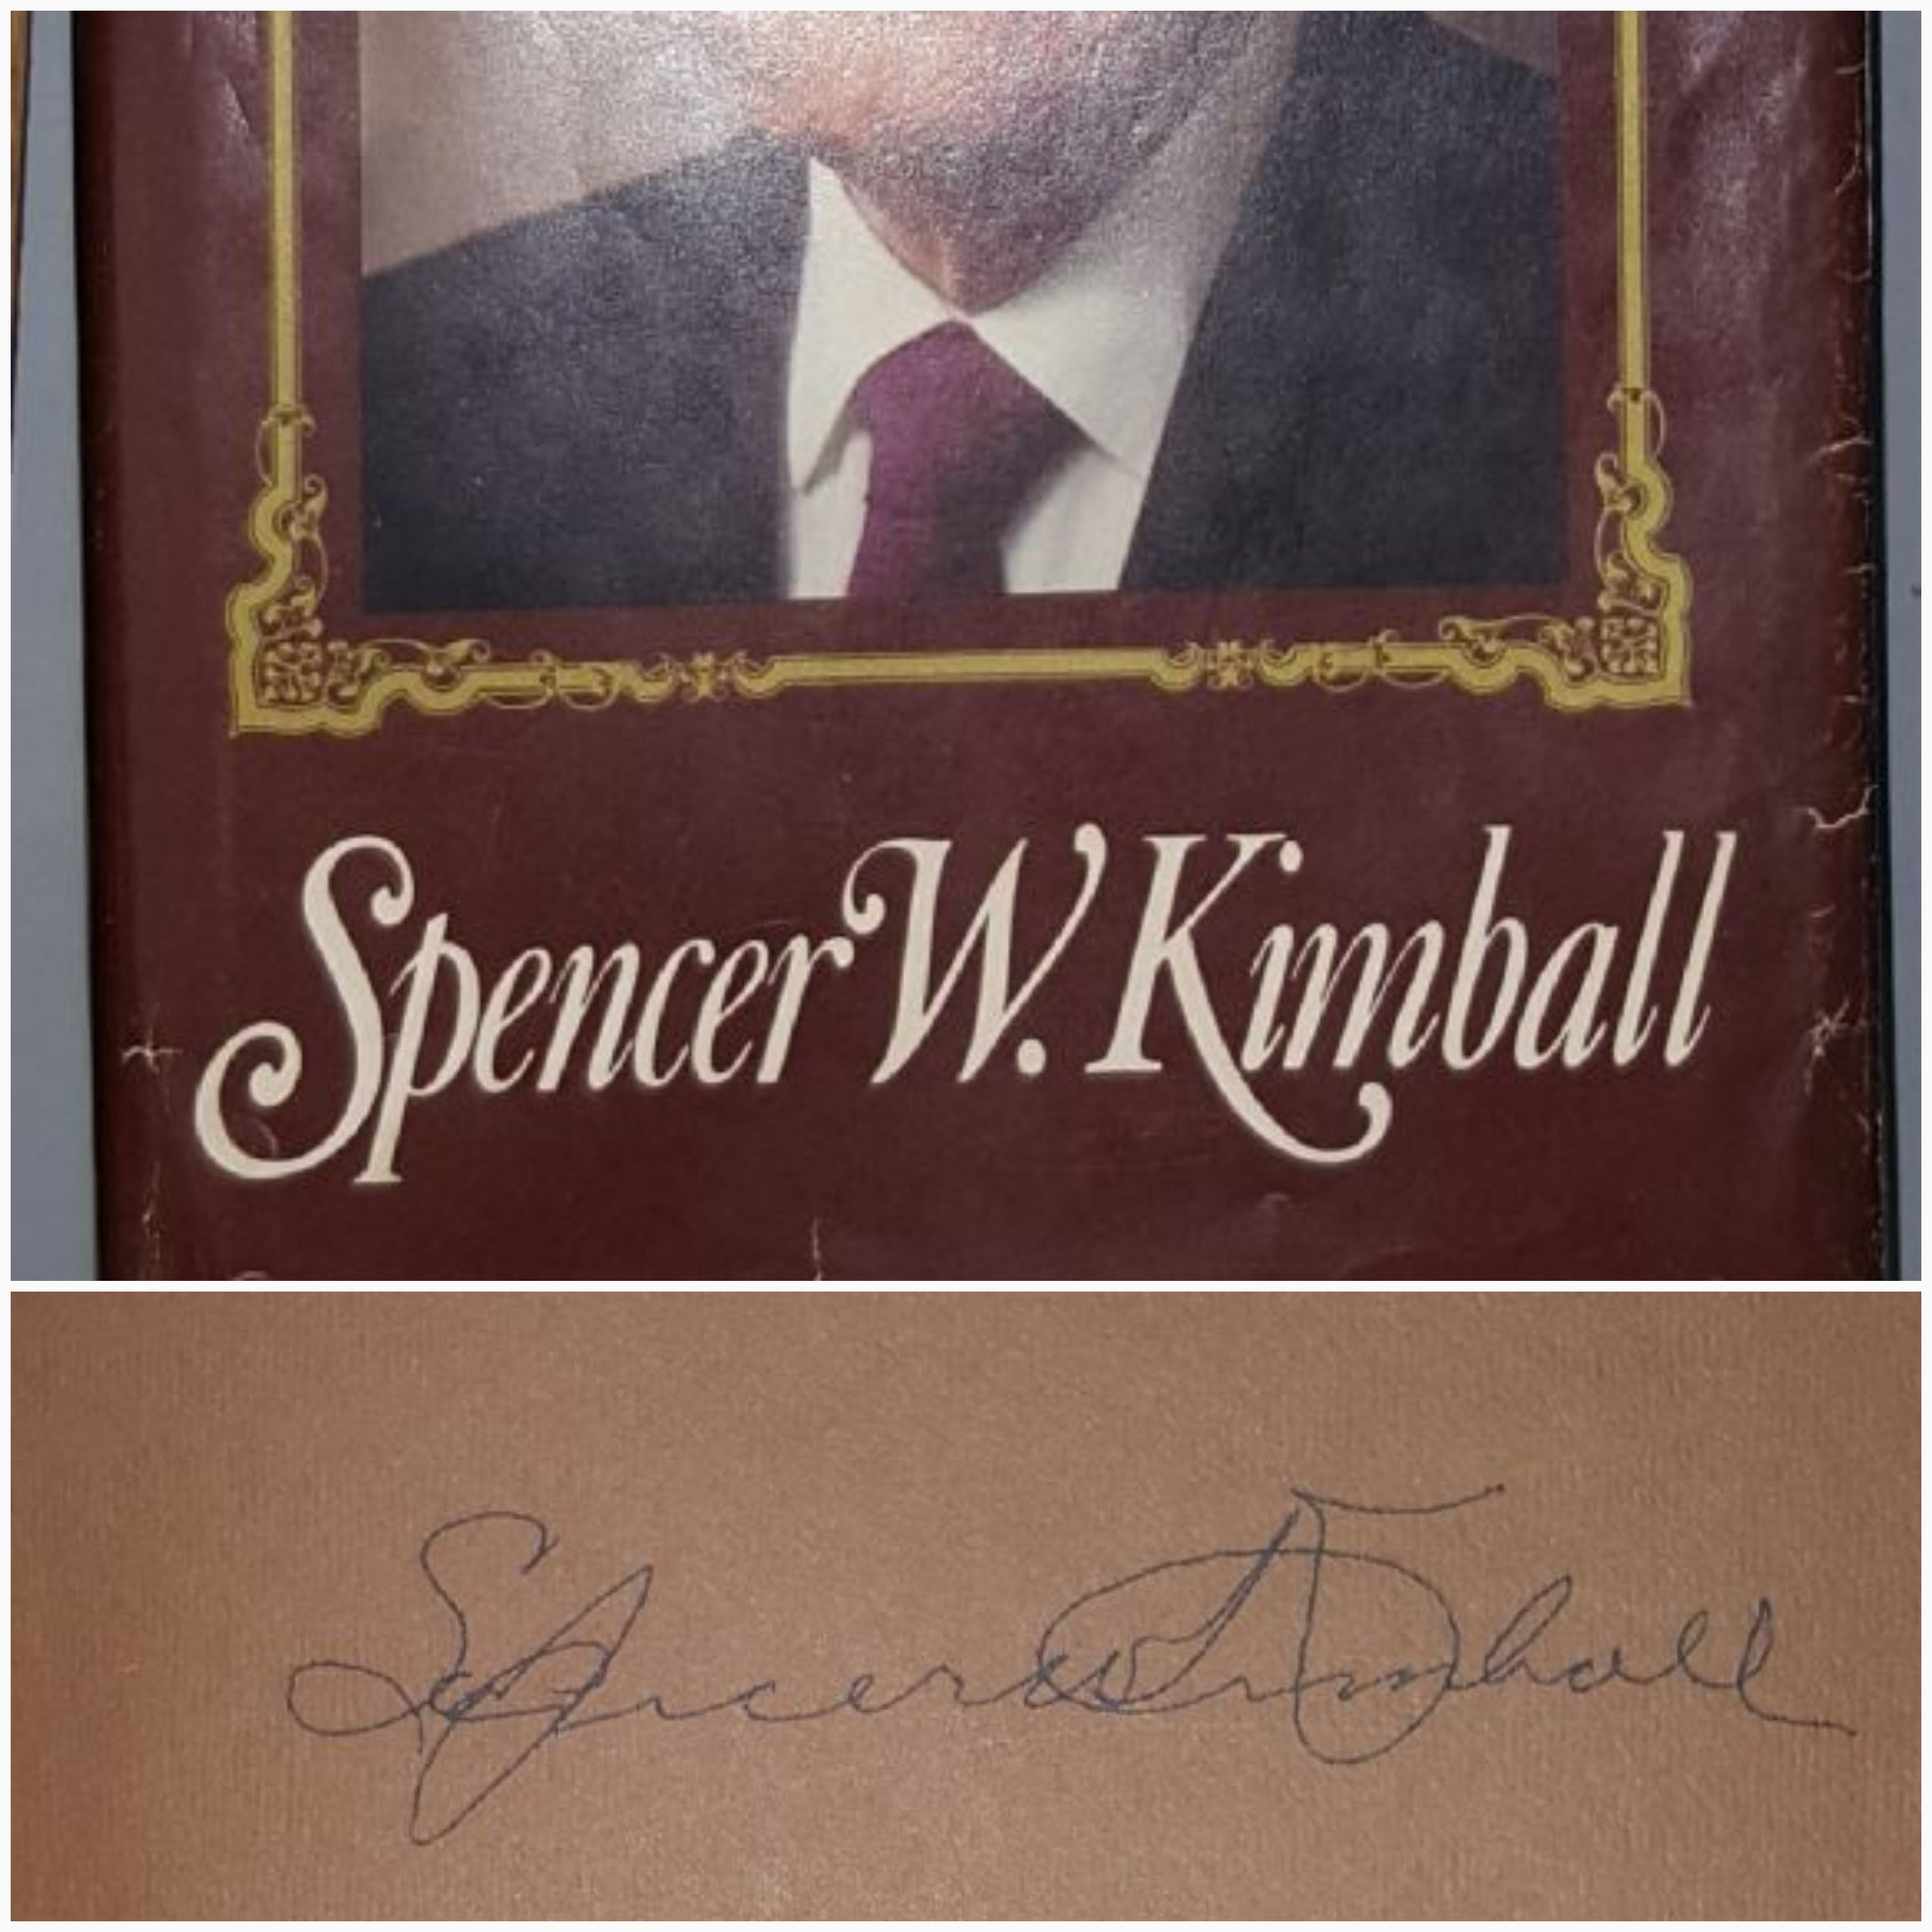 SPENCER W. KIMBALL - THE EARLY AND APOSTOLIC YEARS - Twelfth President of the Church of Jesus Christ of Latter-Day Saints, Kimball, Edward L. & Kimball, Andrew E. Jr.